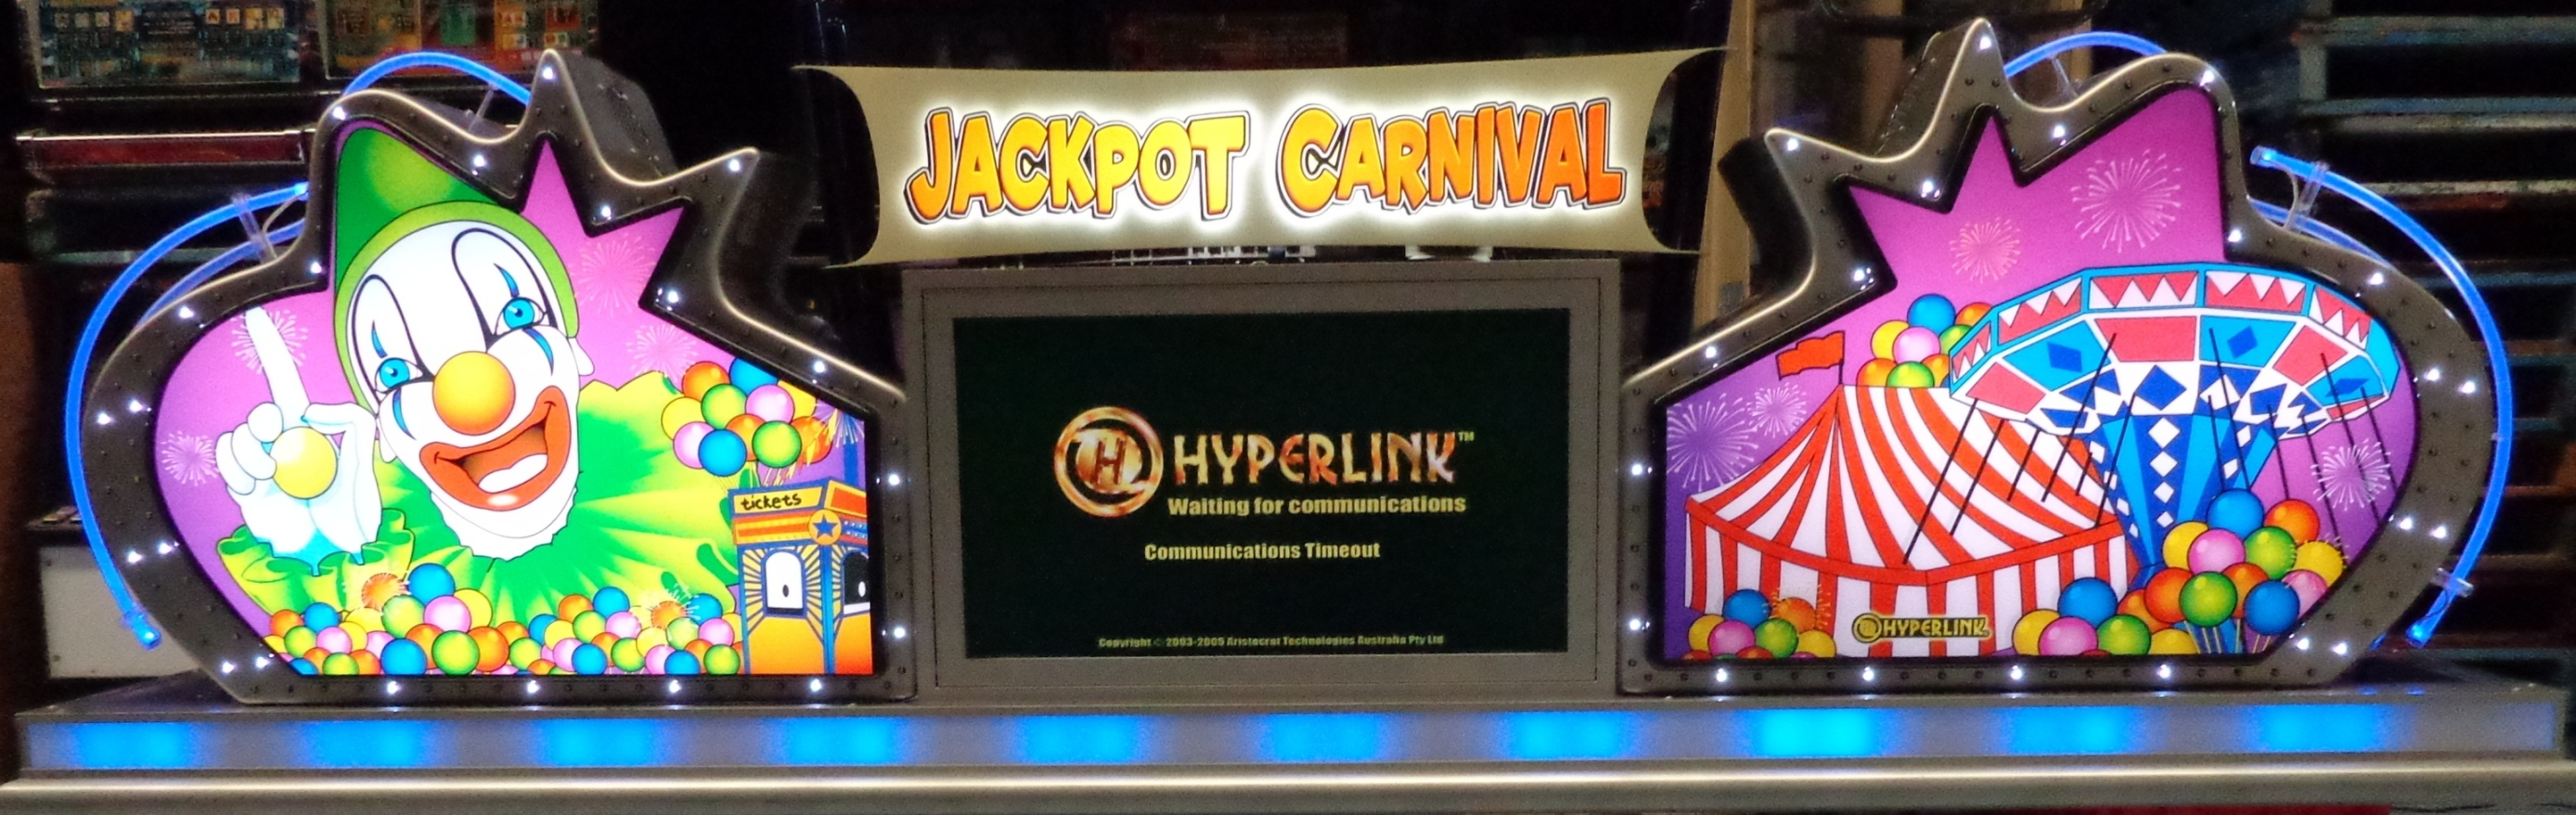 Jackpot Carnival Sign